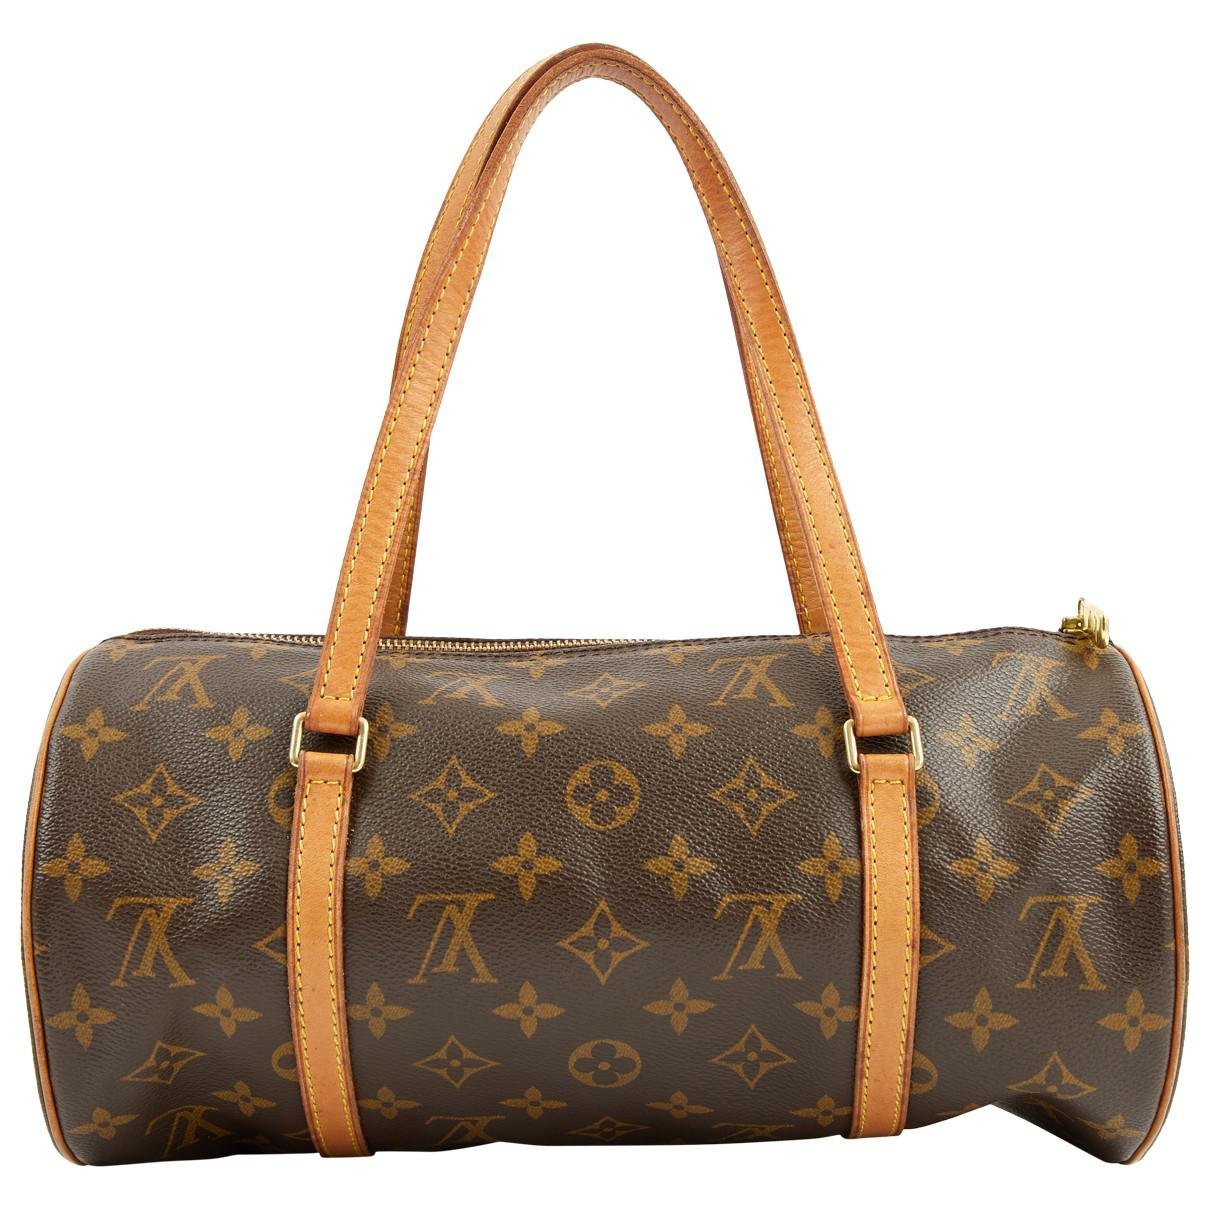 Pre-owned - Cloth bowling bag Louis Vuitton S4eCkA